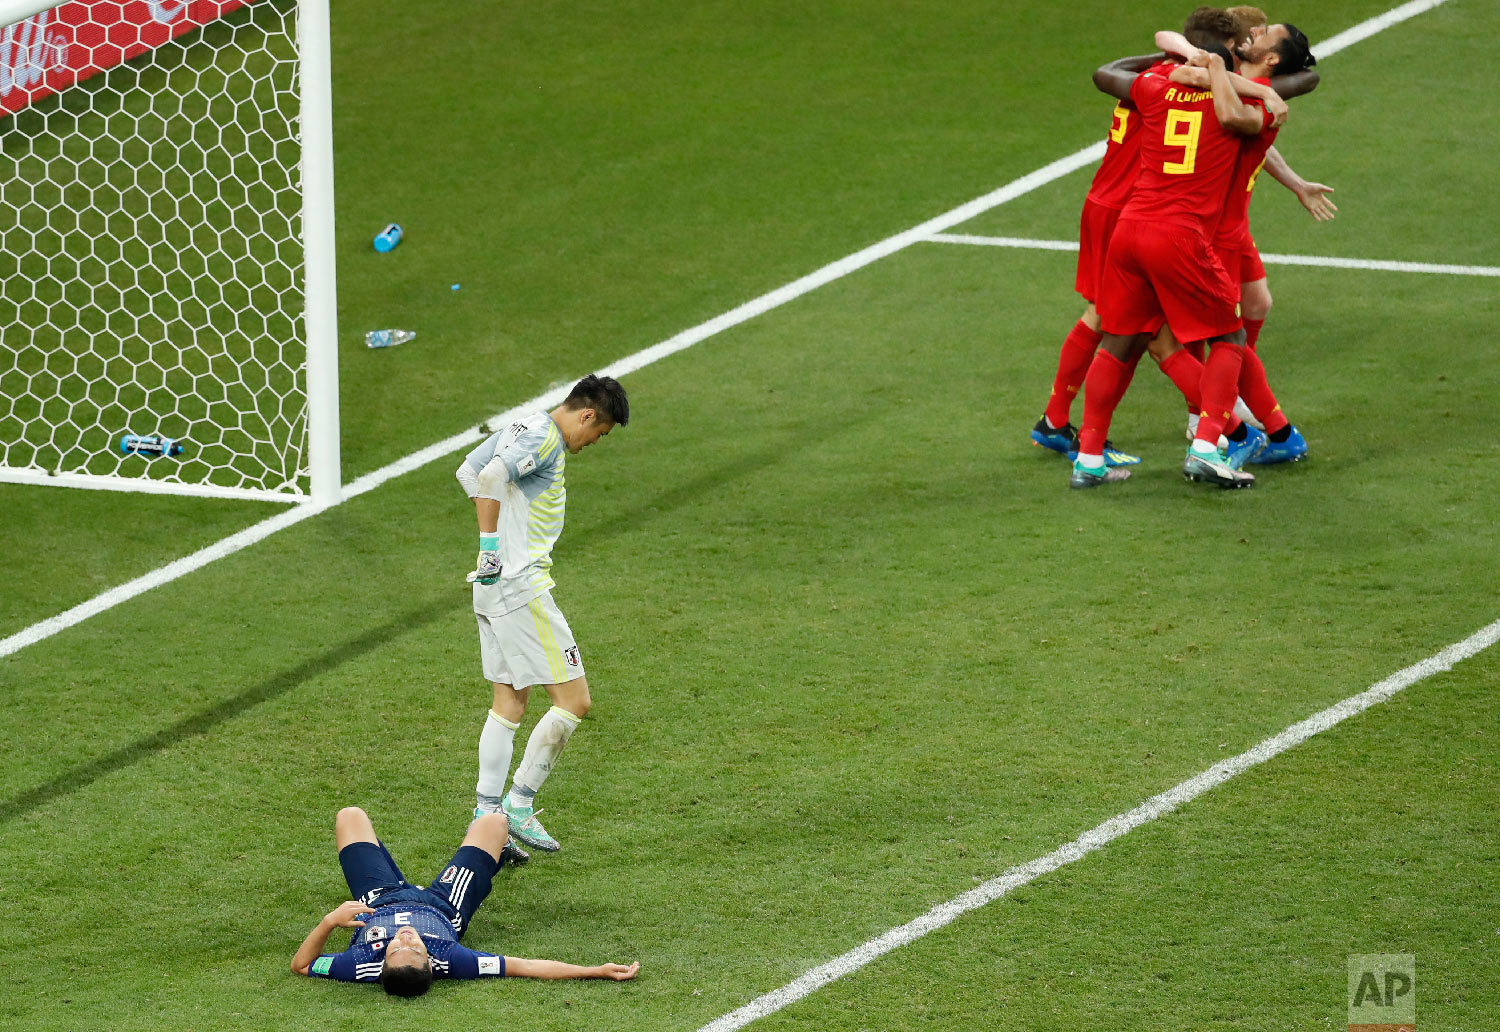 Belgium's Nacer Chadli, top right, is cheered by teammates after scoring his third side goal during the round of 16 match between Belgium and Japan at the 2018 soccer World Cup in the Rostov Arena, in Rostov-on-Don, Russia, Monday, July 2, 2018. (AP Photo/Hassan Ammar)